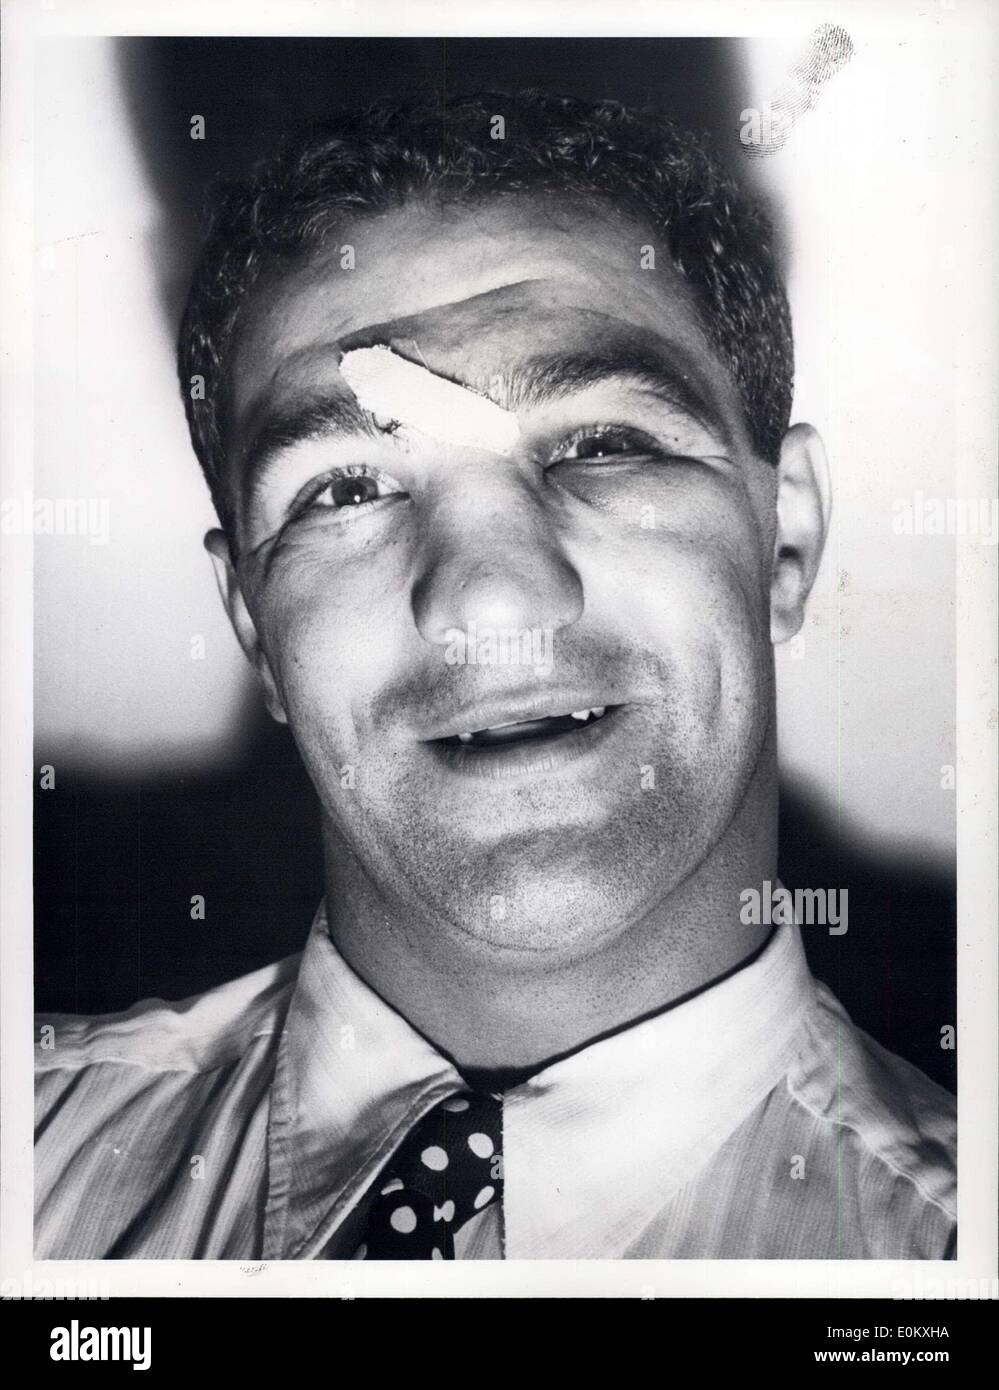 Sep. 26, 1952 - New Heavy Weight ''Champ'' New York, N.Y.: Rocky Marciano relaxing at the Belmont Plaza Hotel, N.Y. after knocking out Joe Walcott at Phila. - Stock Image